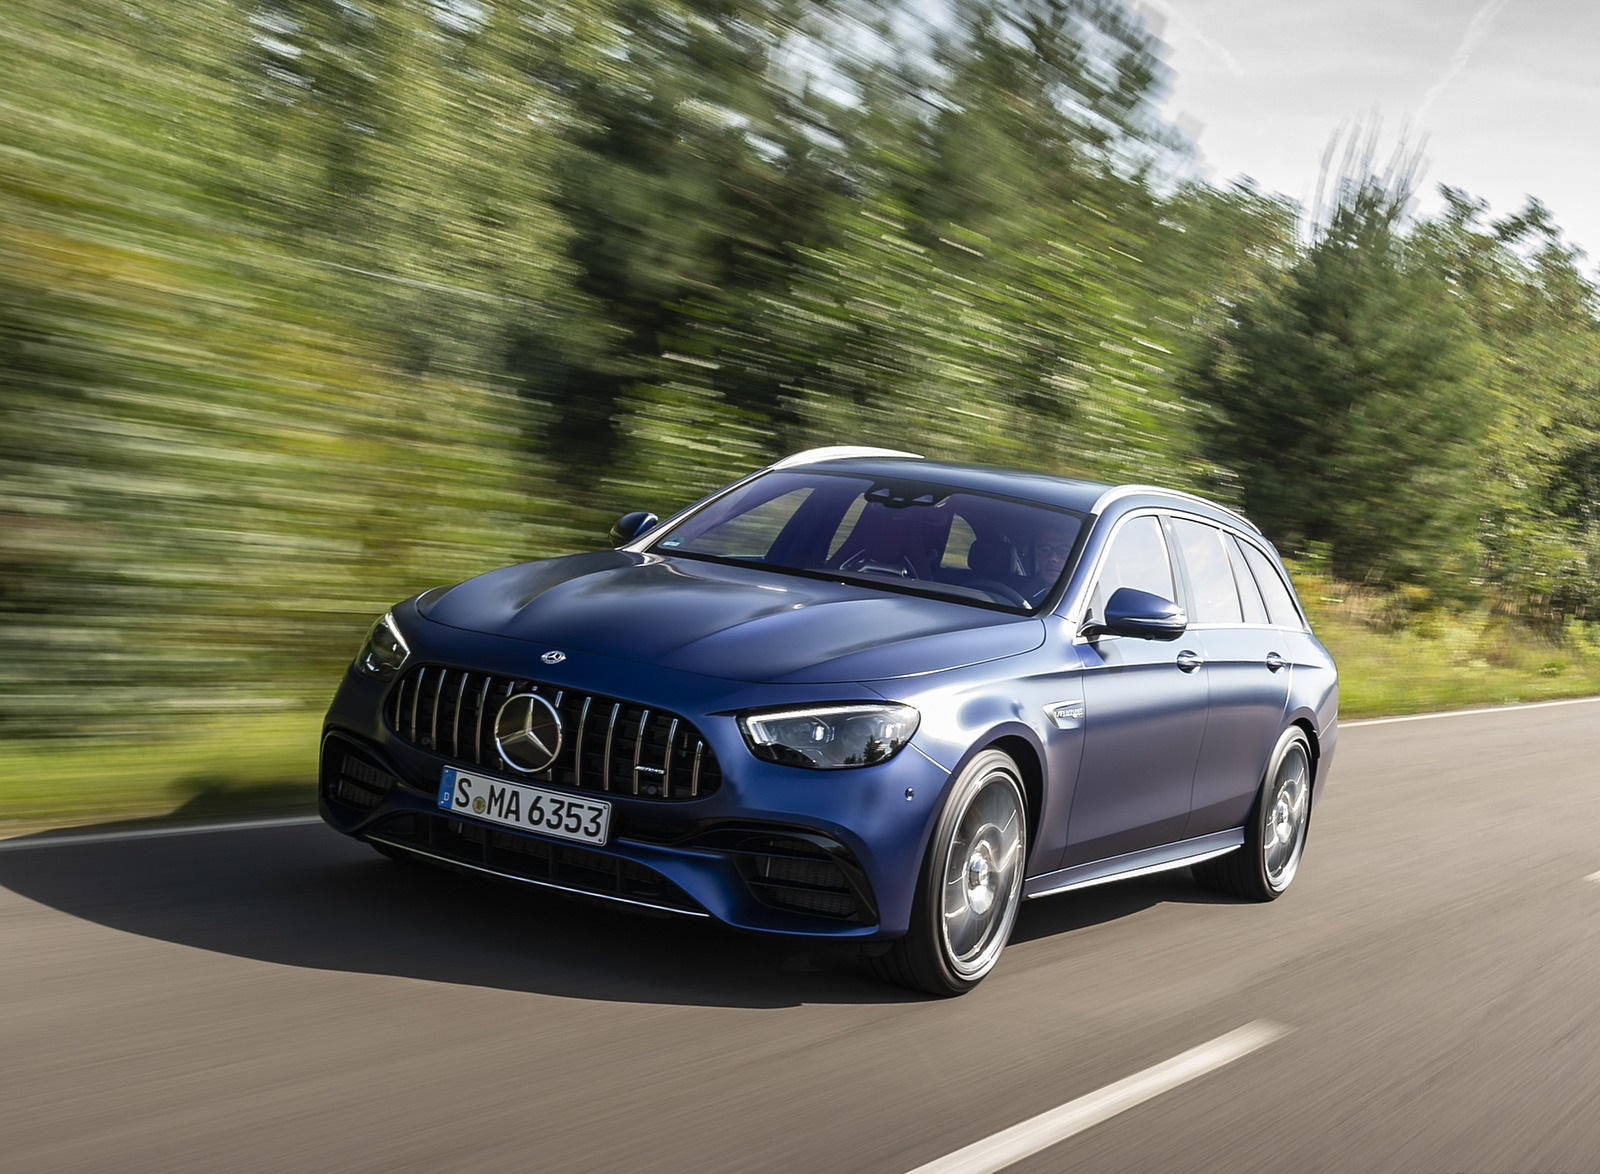 2021 Mercedes-AMG E 63 S Estate 4MATIC+ (Color: Designo Magno Brilliant Blue) Front Three-Quarter Wallpapers (8)